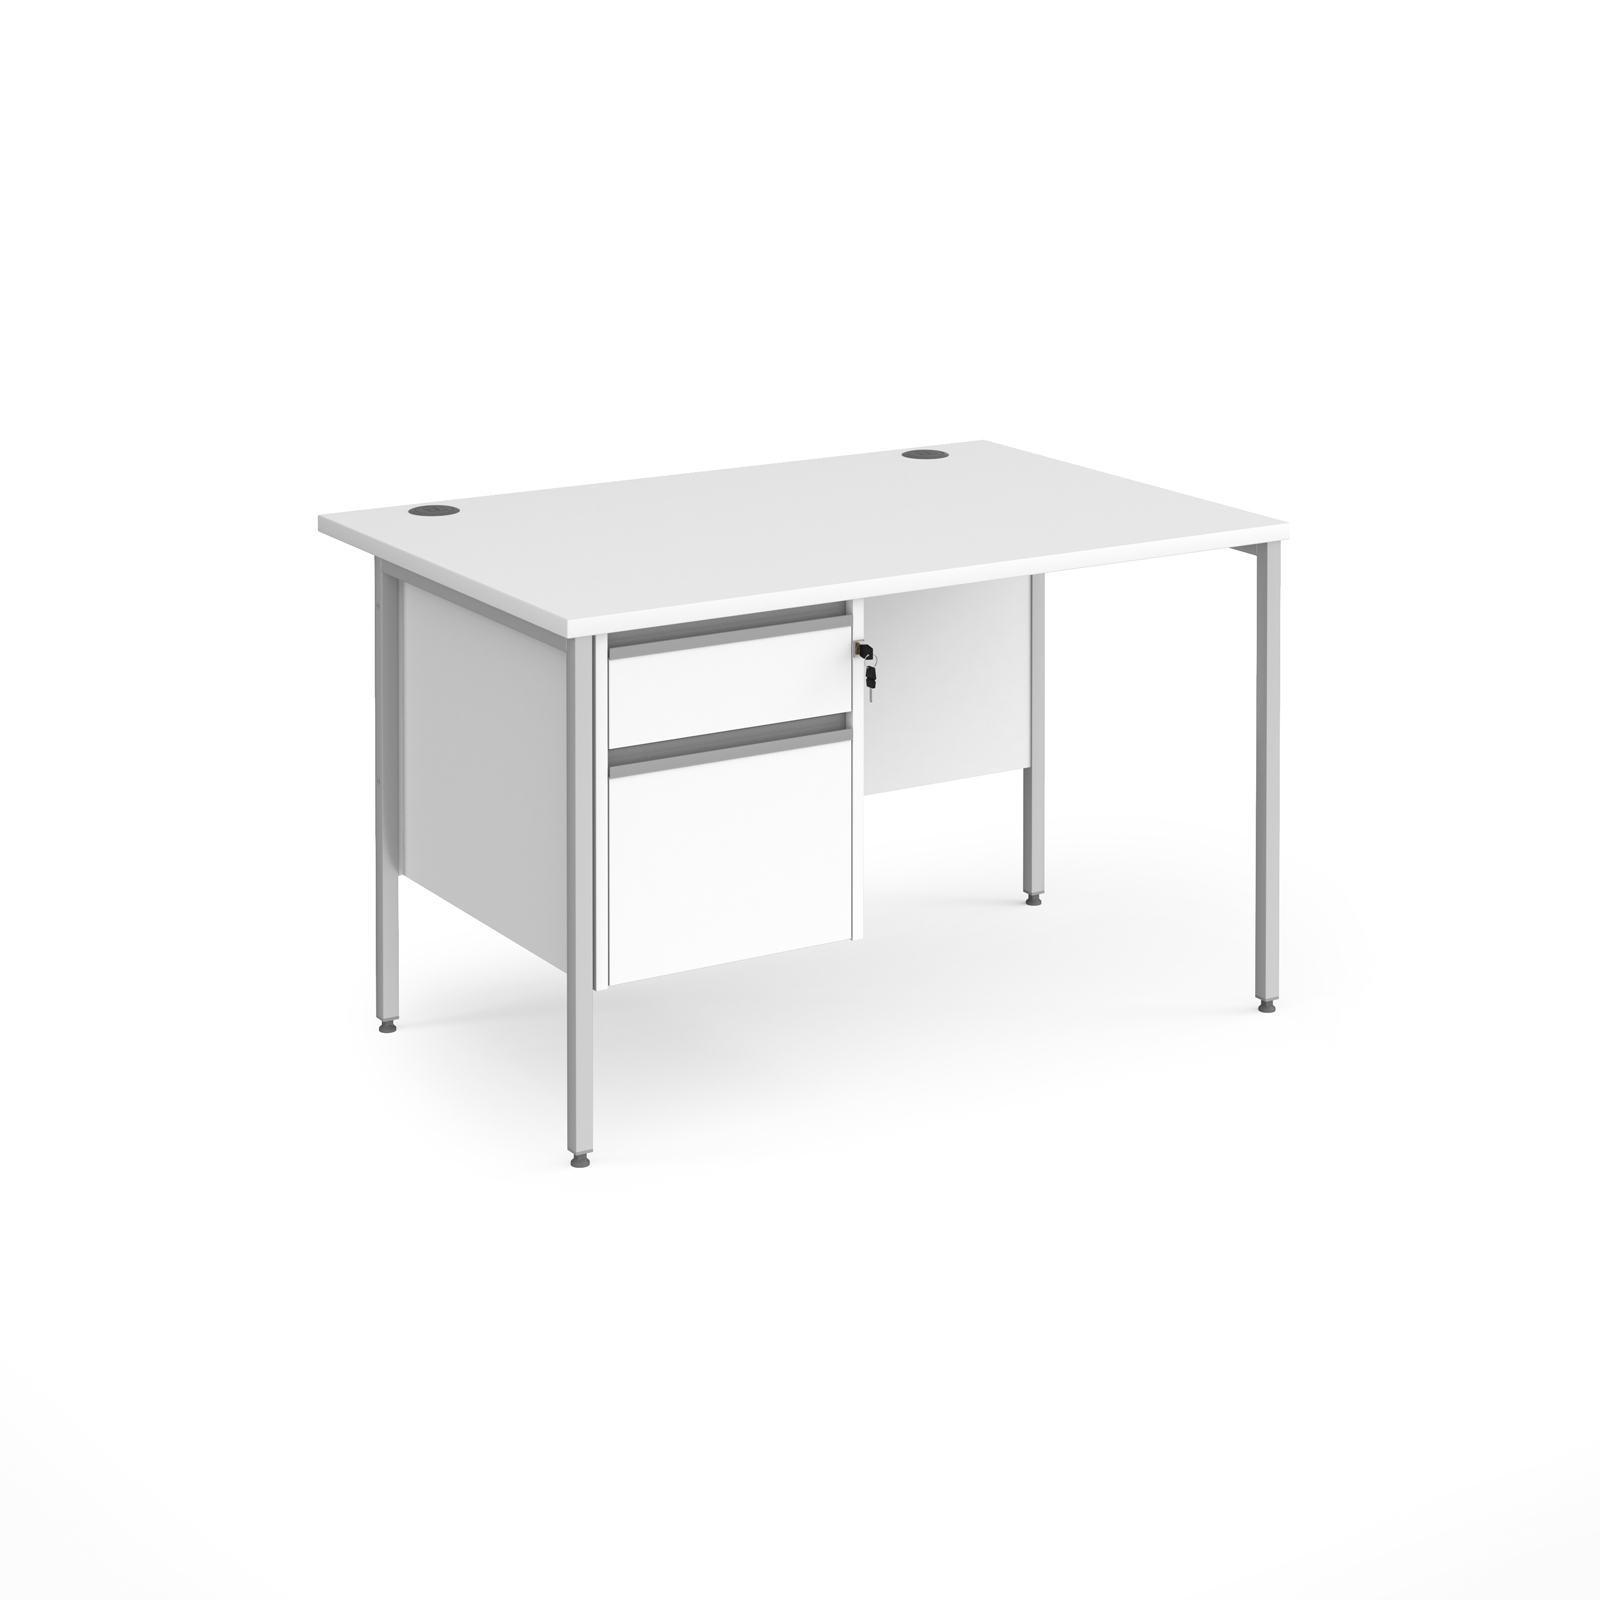 Contract 25 straight desk with 2 drawer pedestal and silver H-Frame leg 1200mm x 800mm - white top